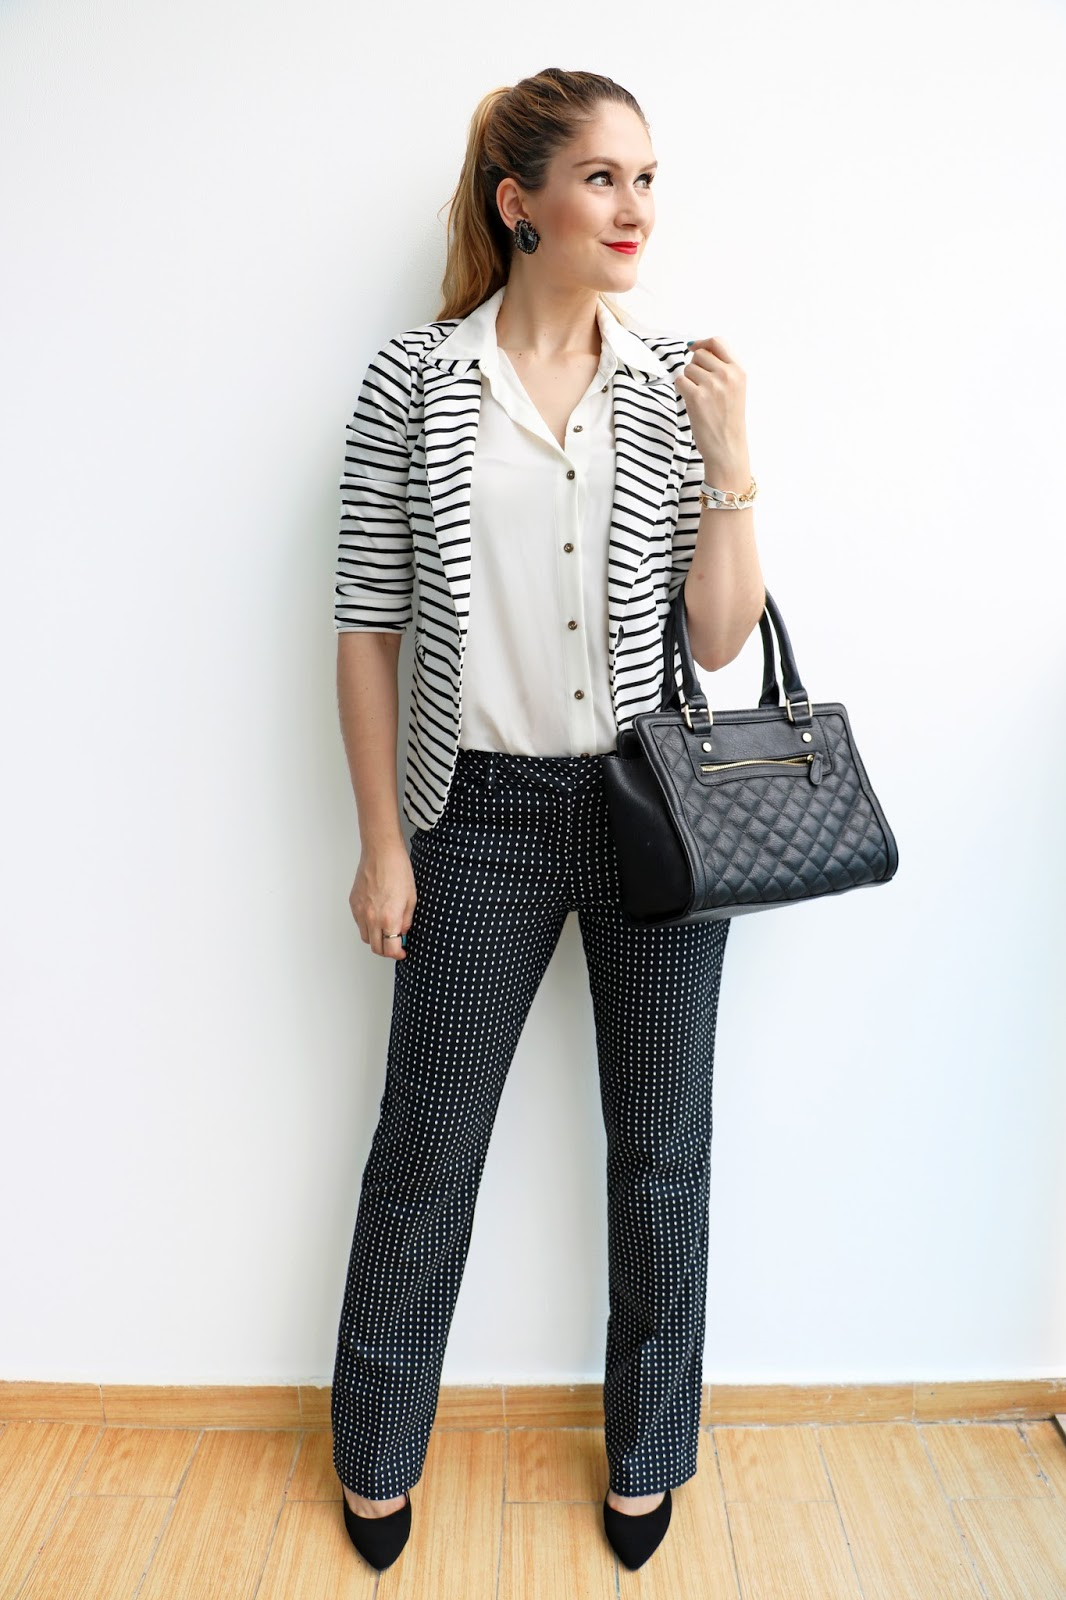 Chic outfit for work